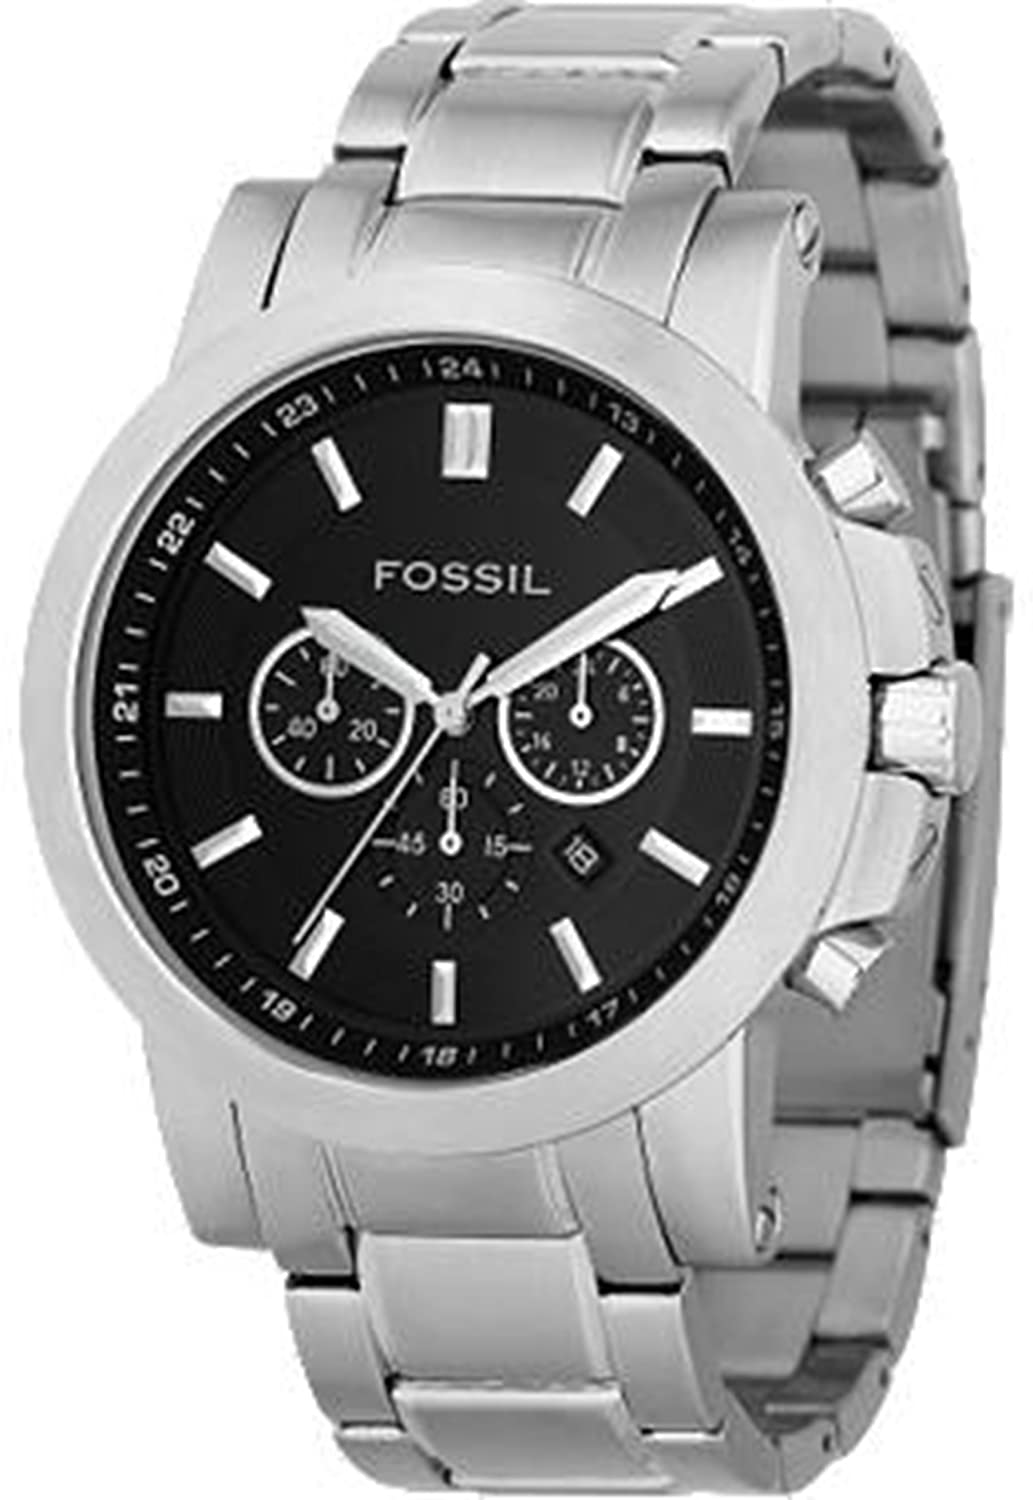 Fossil Mens Watch Stainless Steel Bracelet Fs4311 Ww Ch2600 Watches